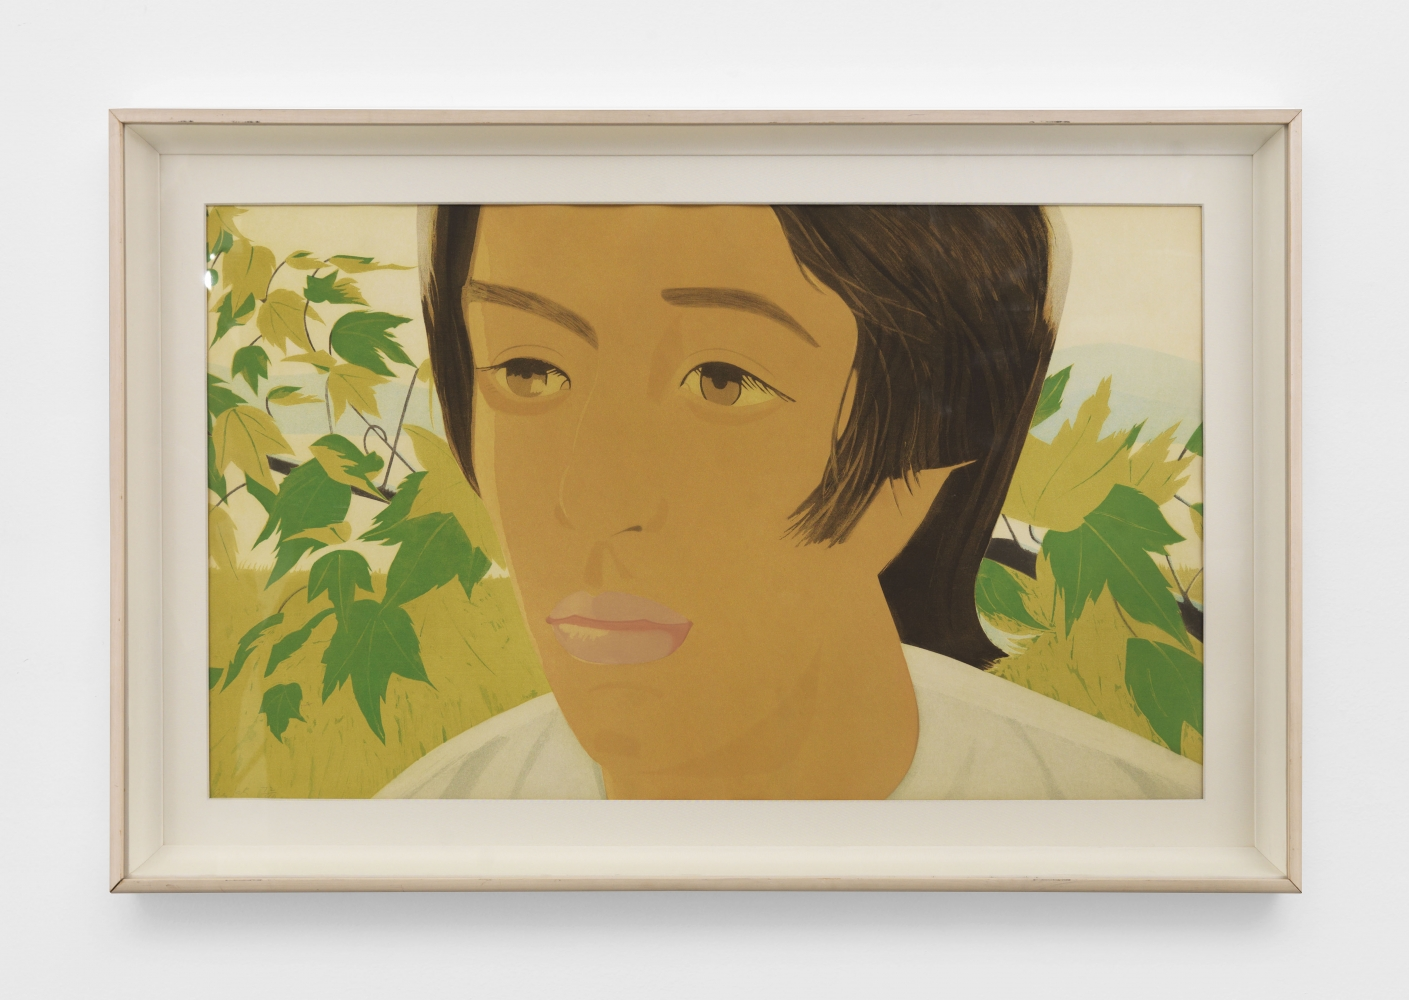 Framed color aquatint by Alex Katz featuring a boy with brown hair and wearing a white shirt against a green foliage background